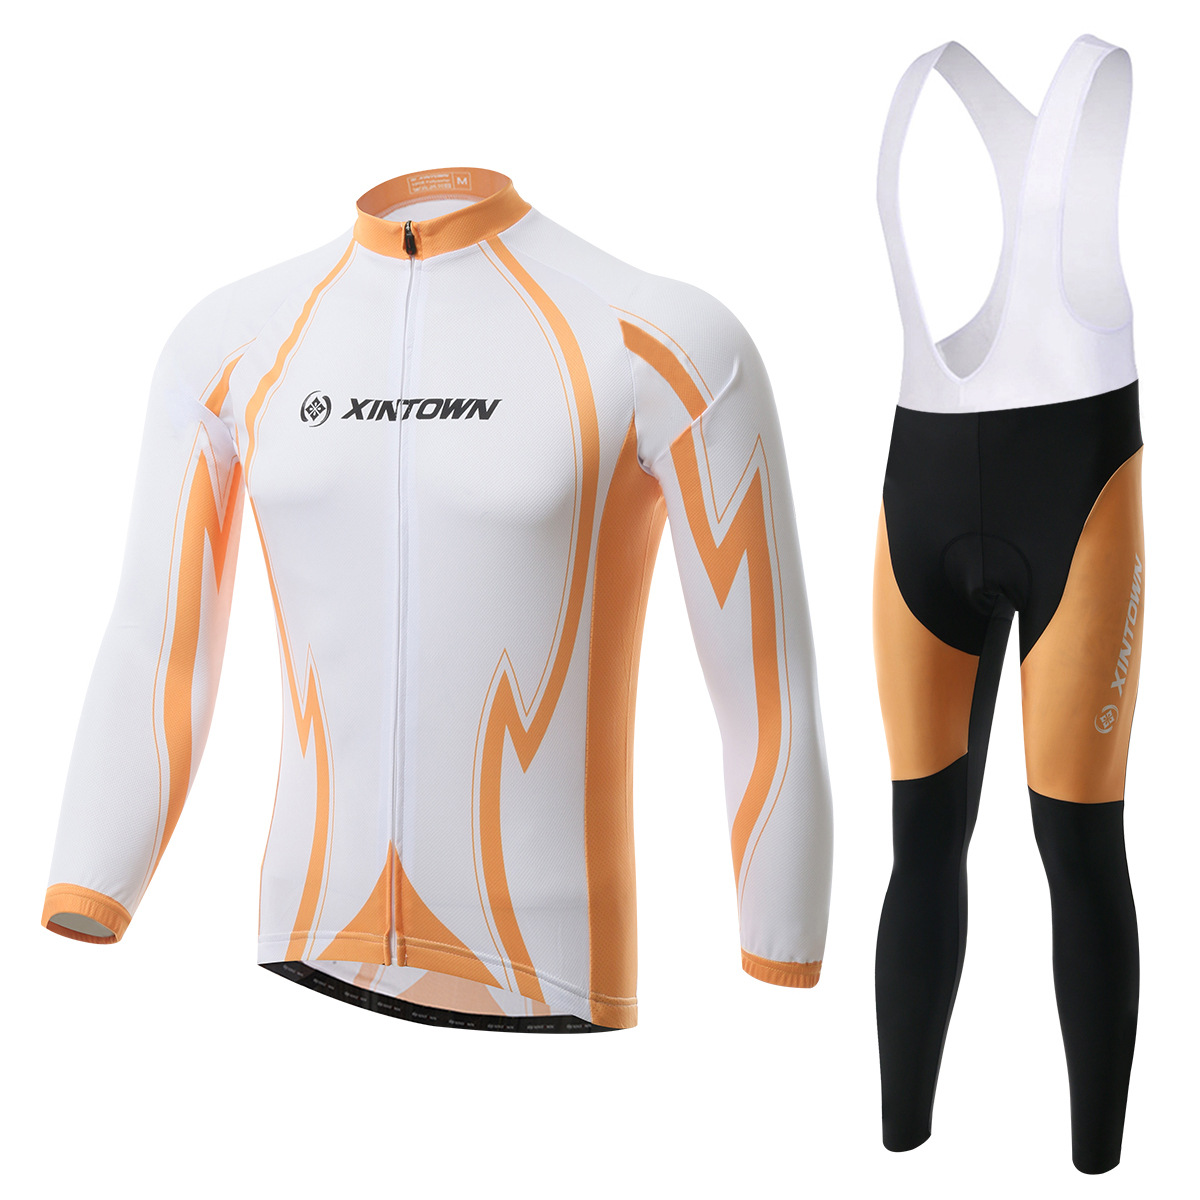 XINTOWN Liuyue bike riding jersey strap long sleeve suit wear bicycle suits fleece windproof warm function underwear